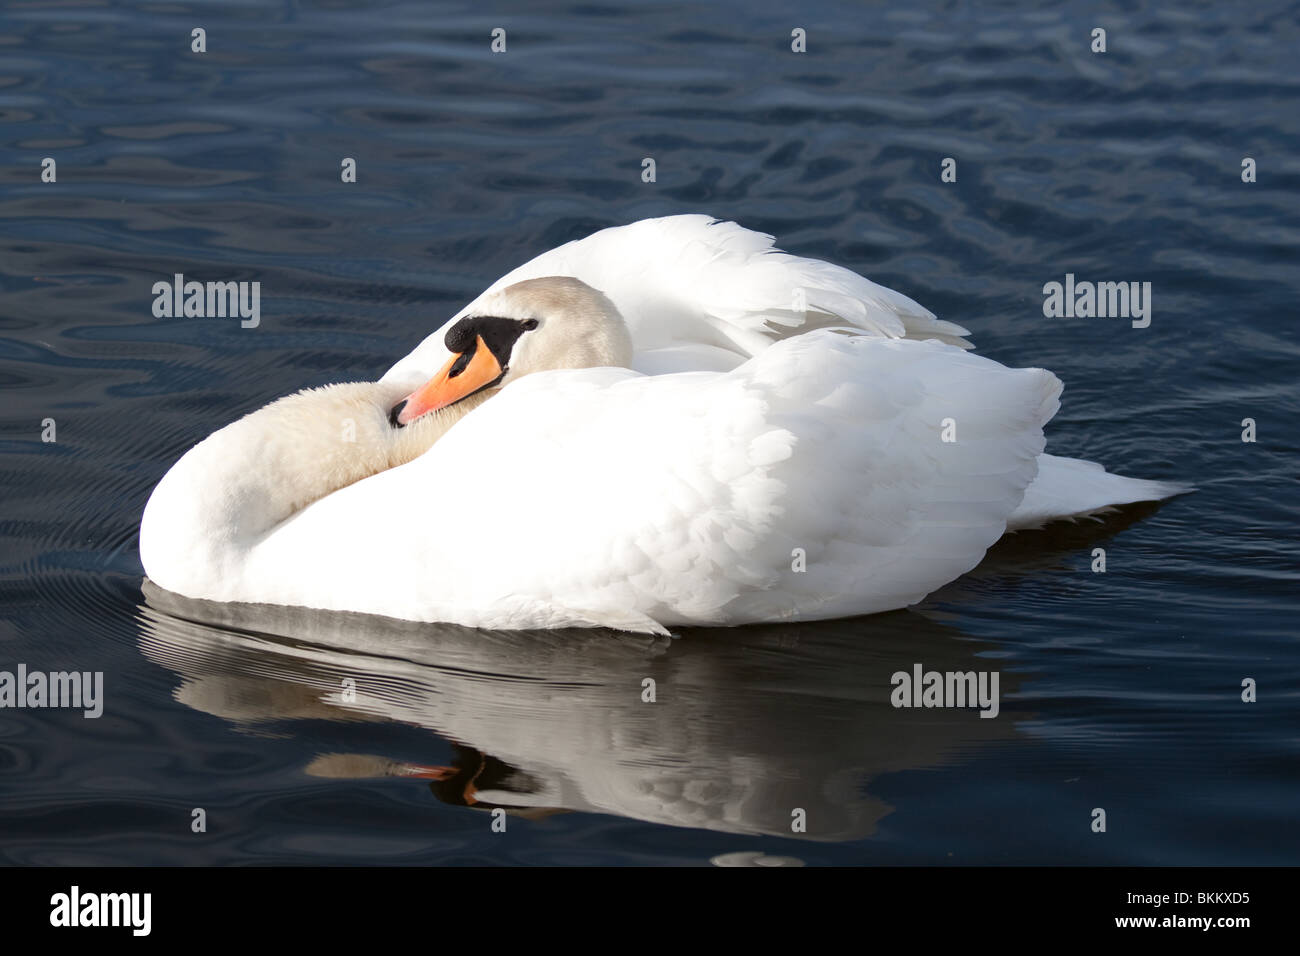 Mute swan in aggressive pose with the light reflecting the rippling dark blue water. - Stock Image